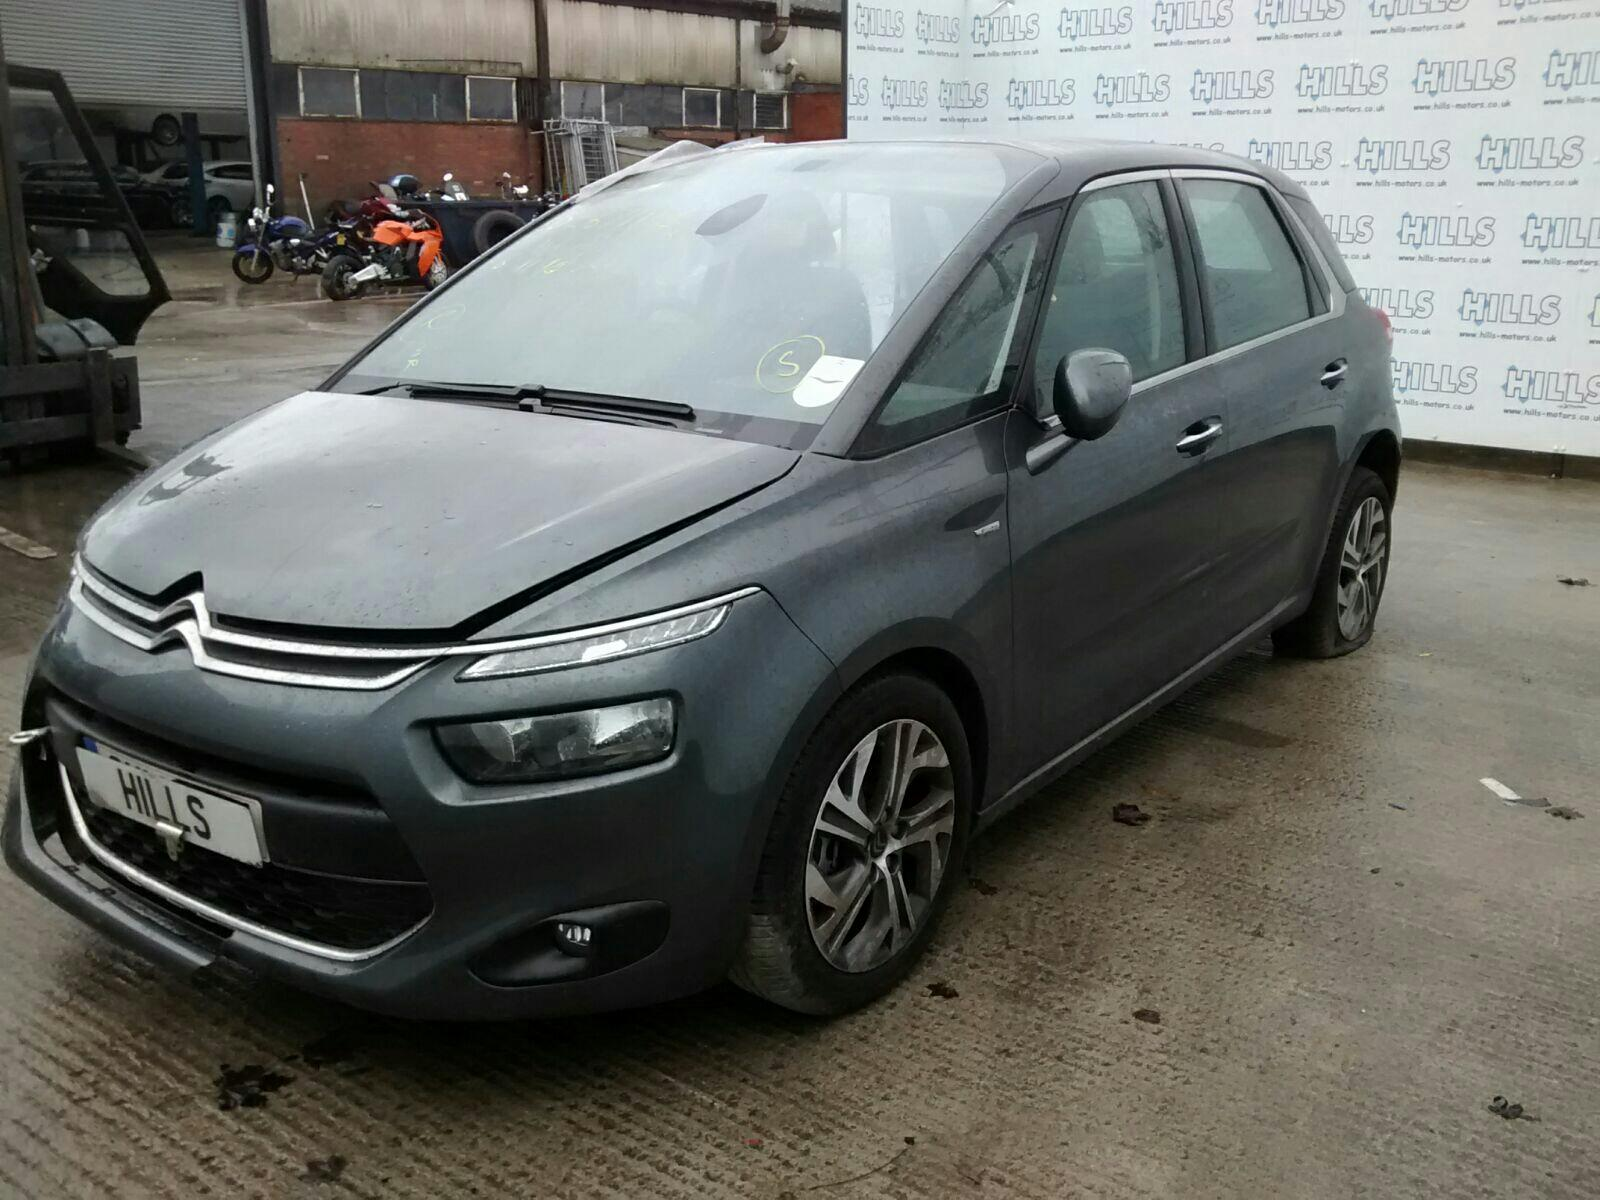 2014 citroen c4 picasso 2013 cloth interior front rear seats door cards ebay - C4 picasso interior ...